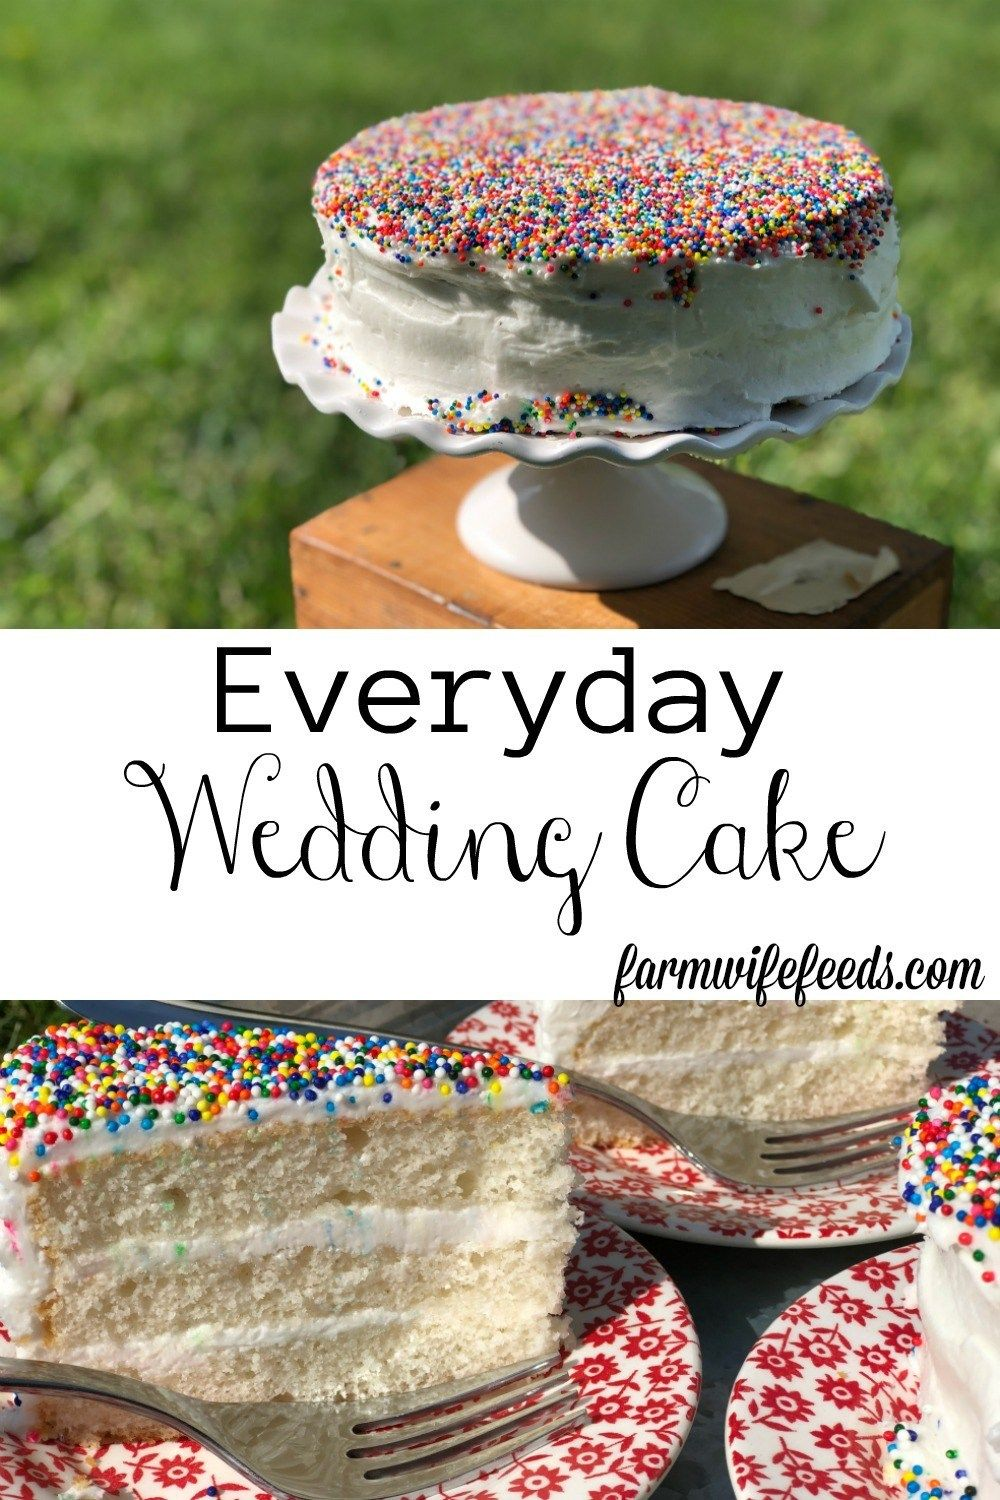 Everyday wedding cake from farmwife feeds is an easy